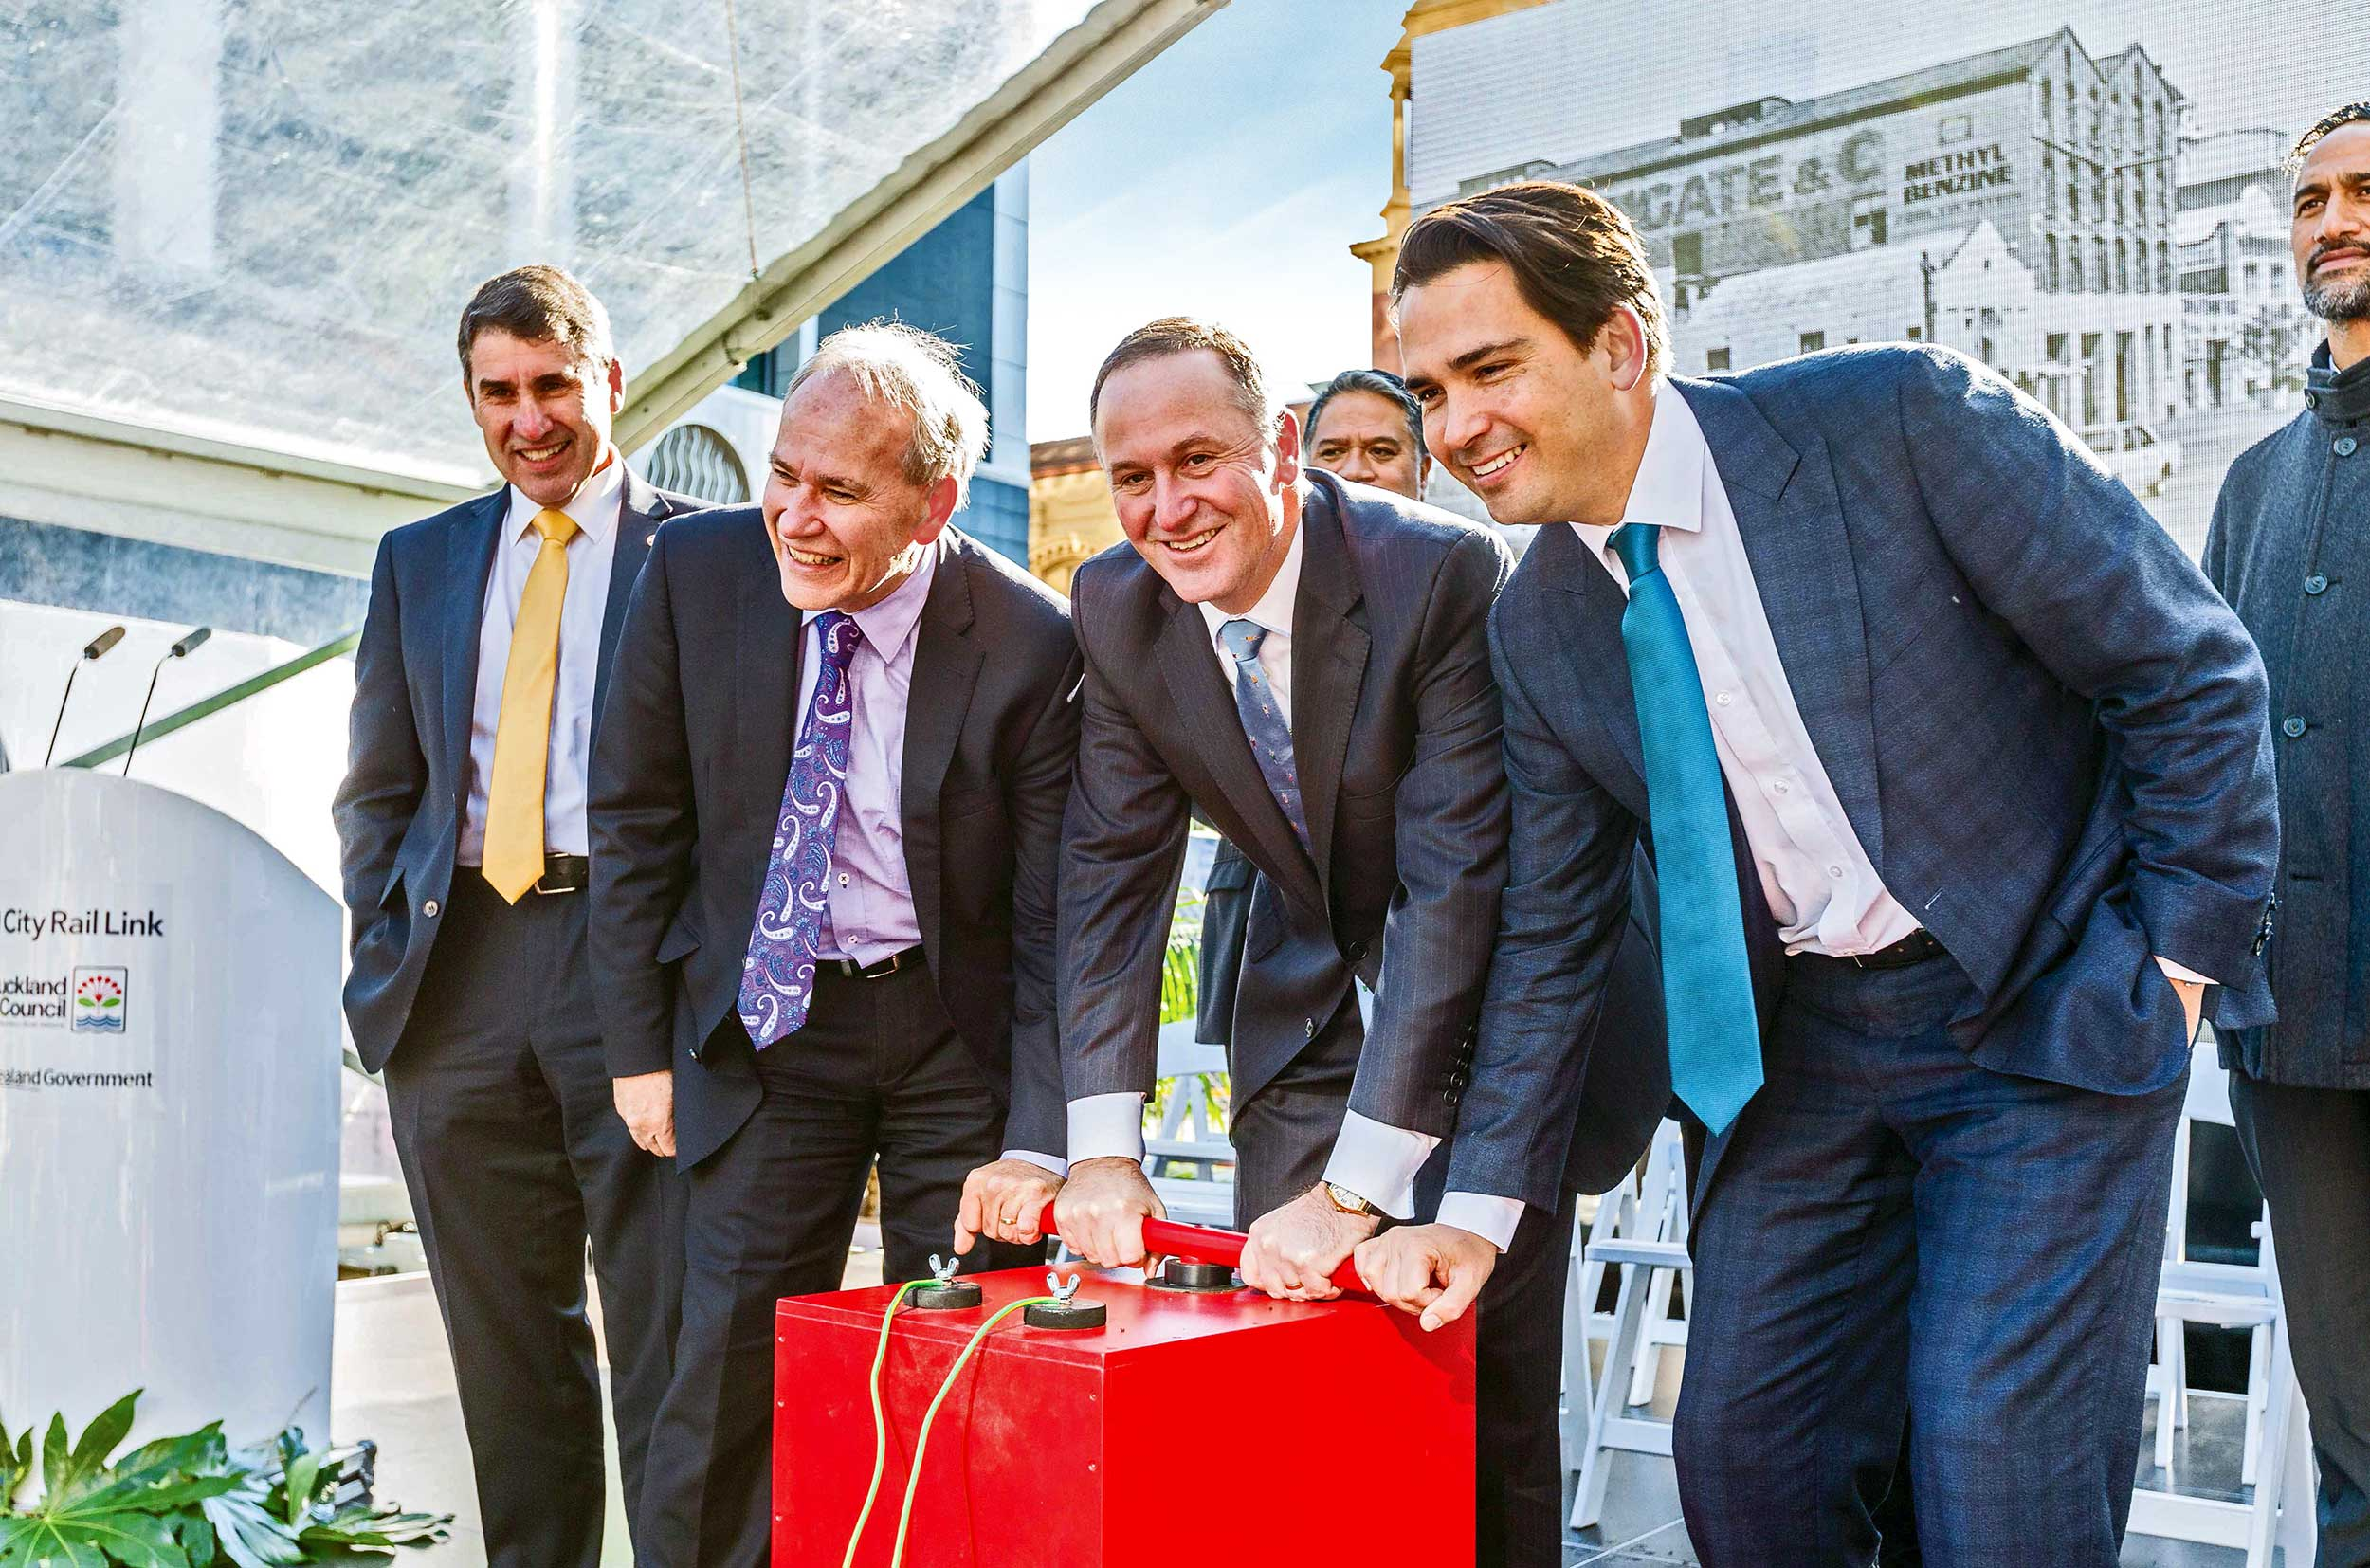 On 2 June 2016,  then Prime Minister John Key, Transport Minister Simon Bridges and Auckland Mayor Len Brown formally marked the historic start of the construction of the CRL at a ceremony at the Britomart Train Station.